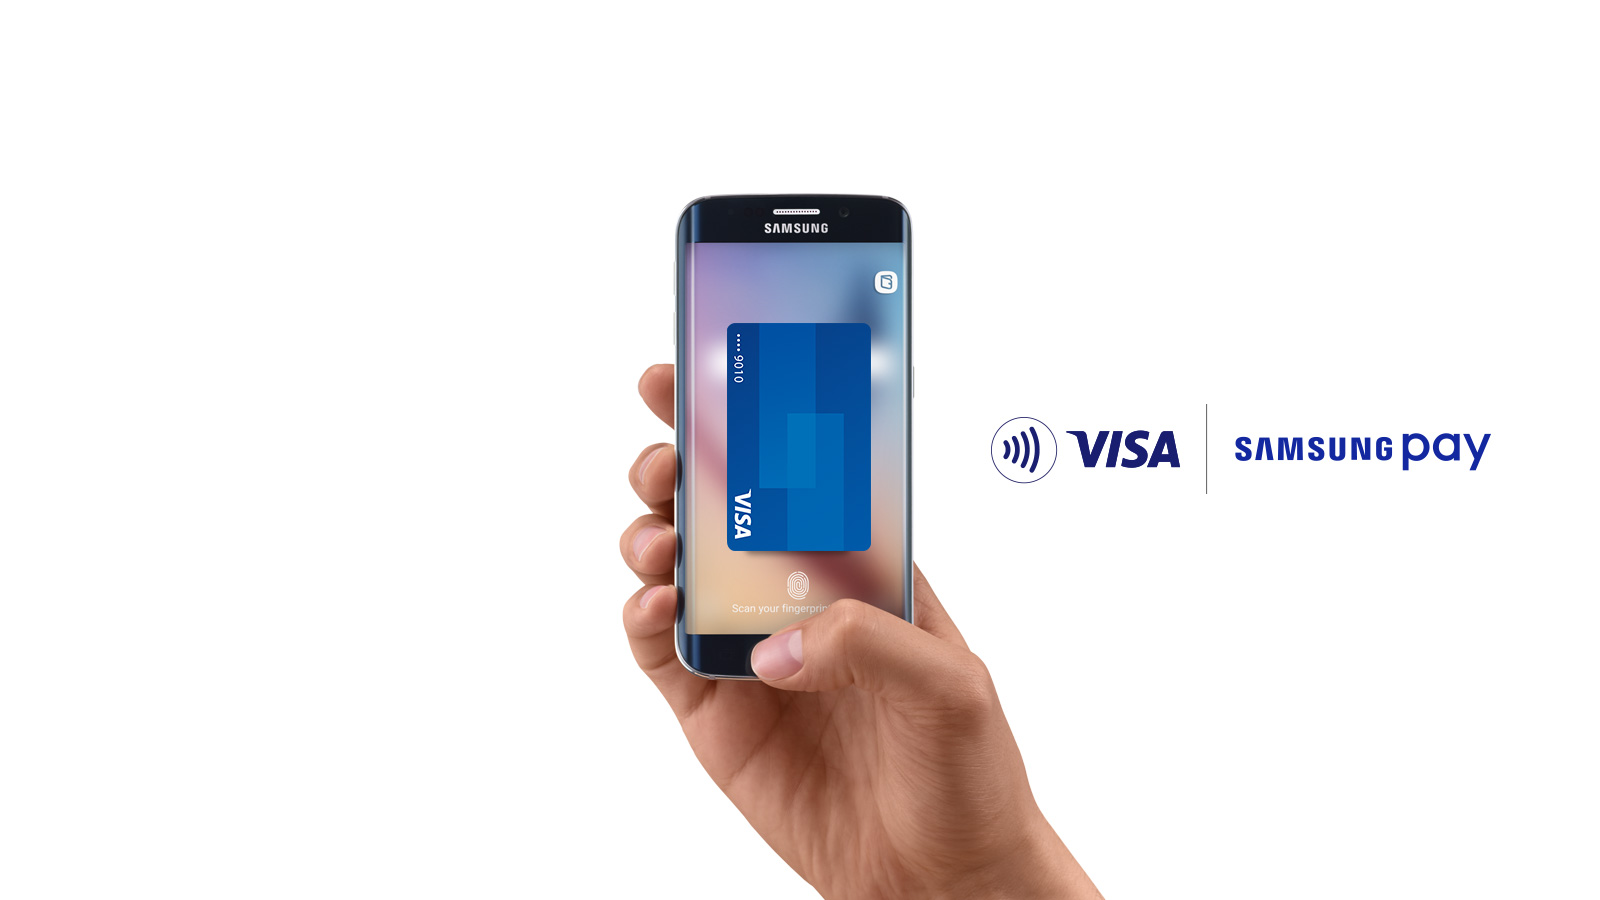 Contactless symbol, Visa Samsung Pay logo, hand holding Samsung smart phone with an image of a Visa card on the display.